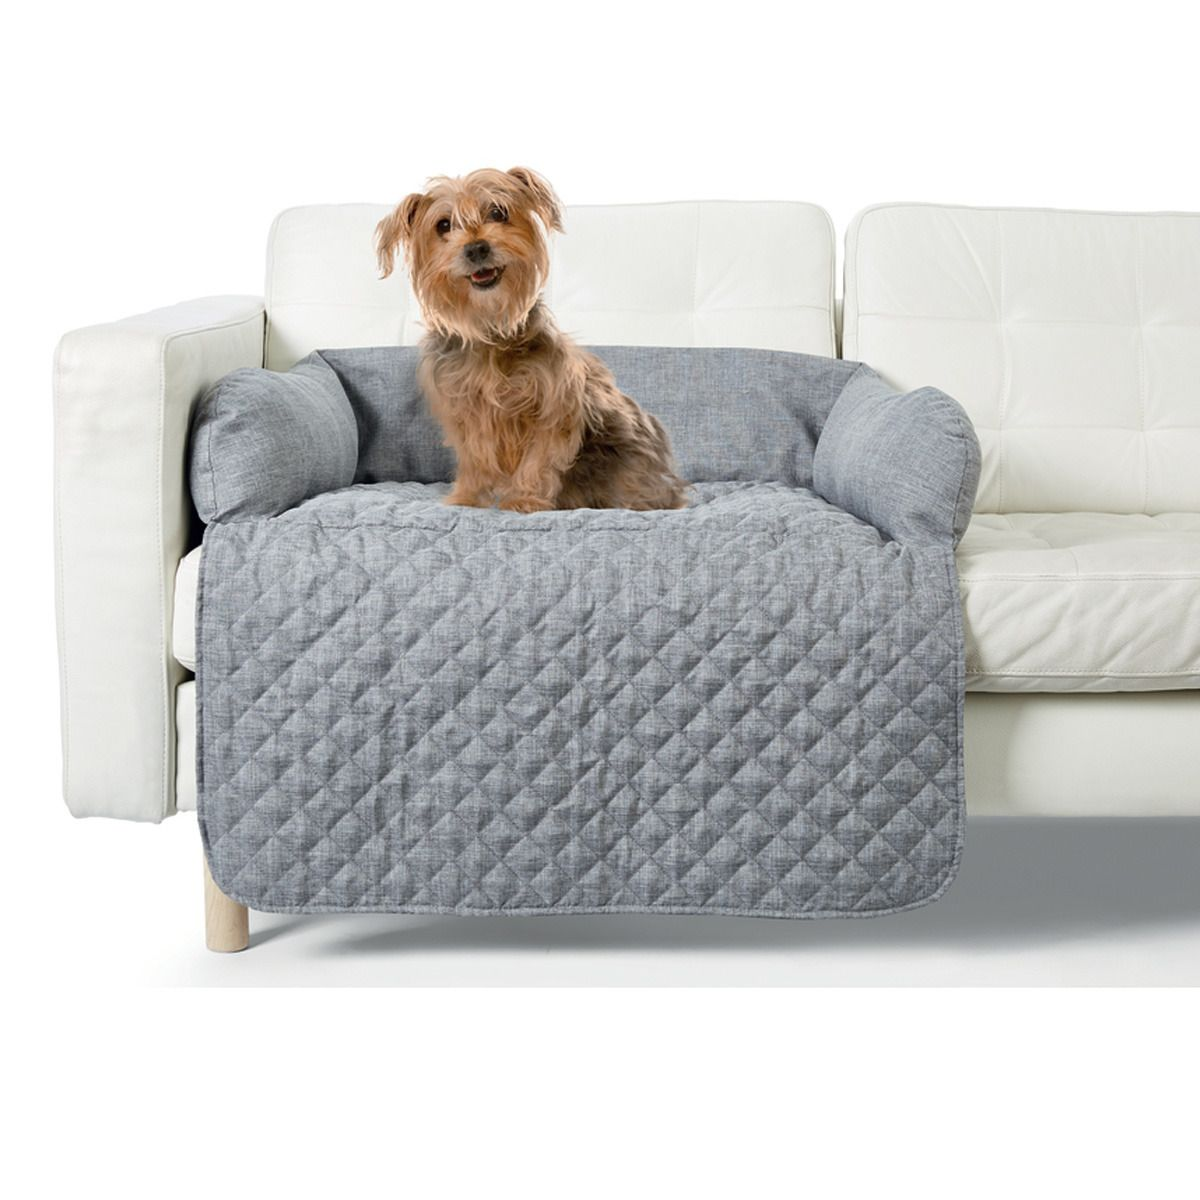 Pet Quilted Couch Topper Dog bed, Couch furniture, Dog